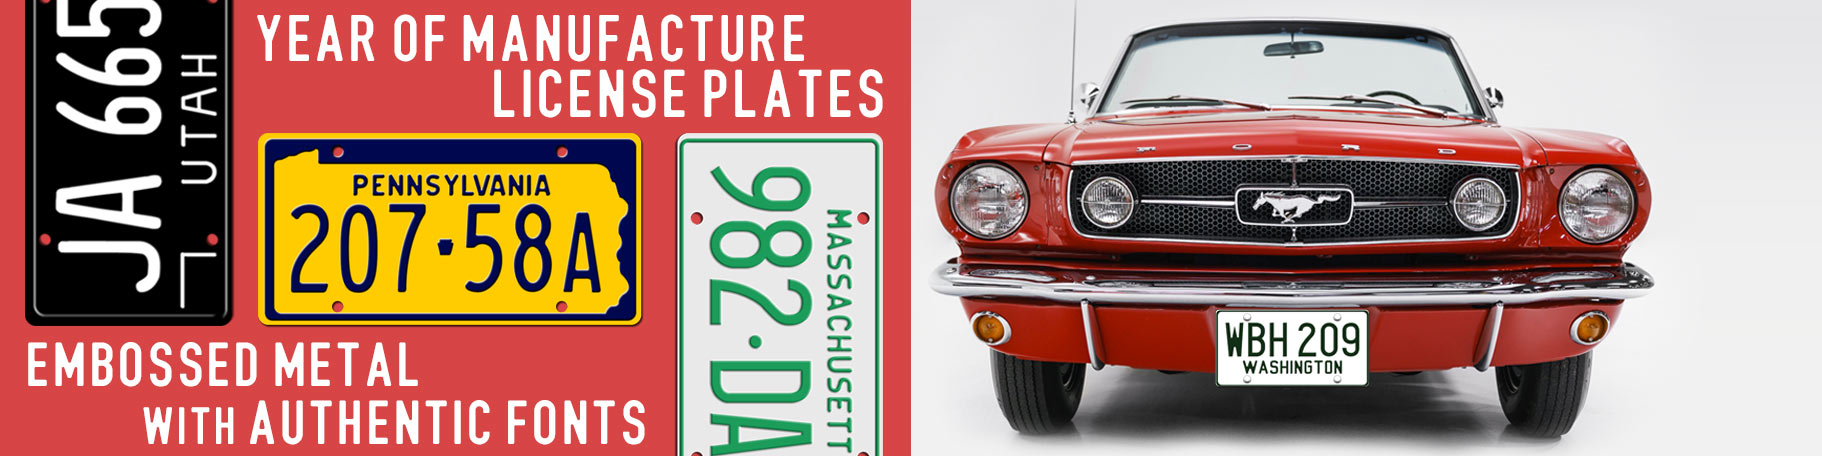 Custom license plates - personalized plates for your collector car, vintage automobile, or hot rod